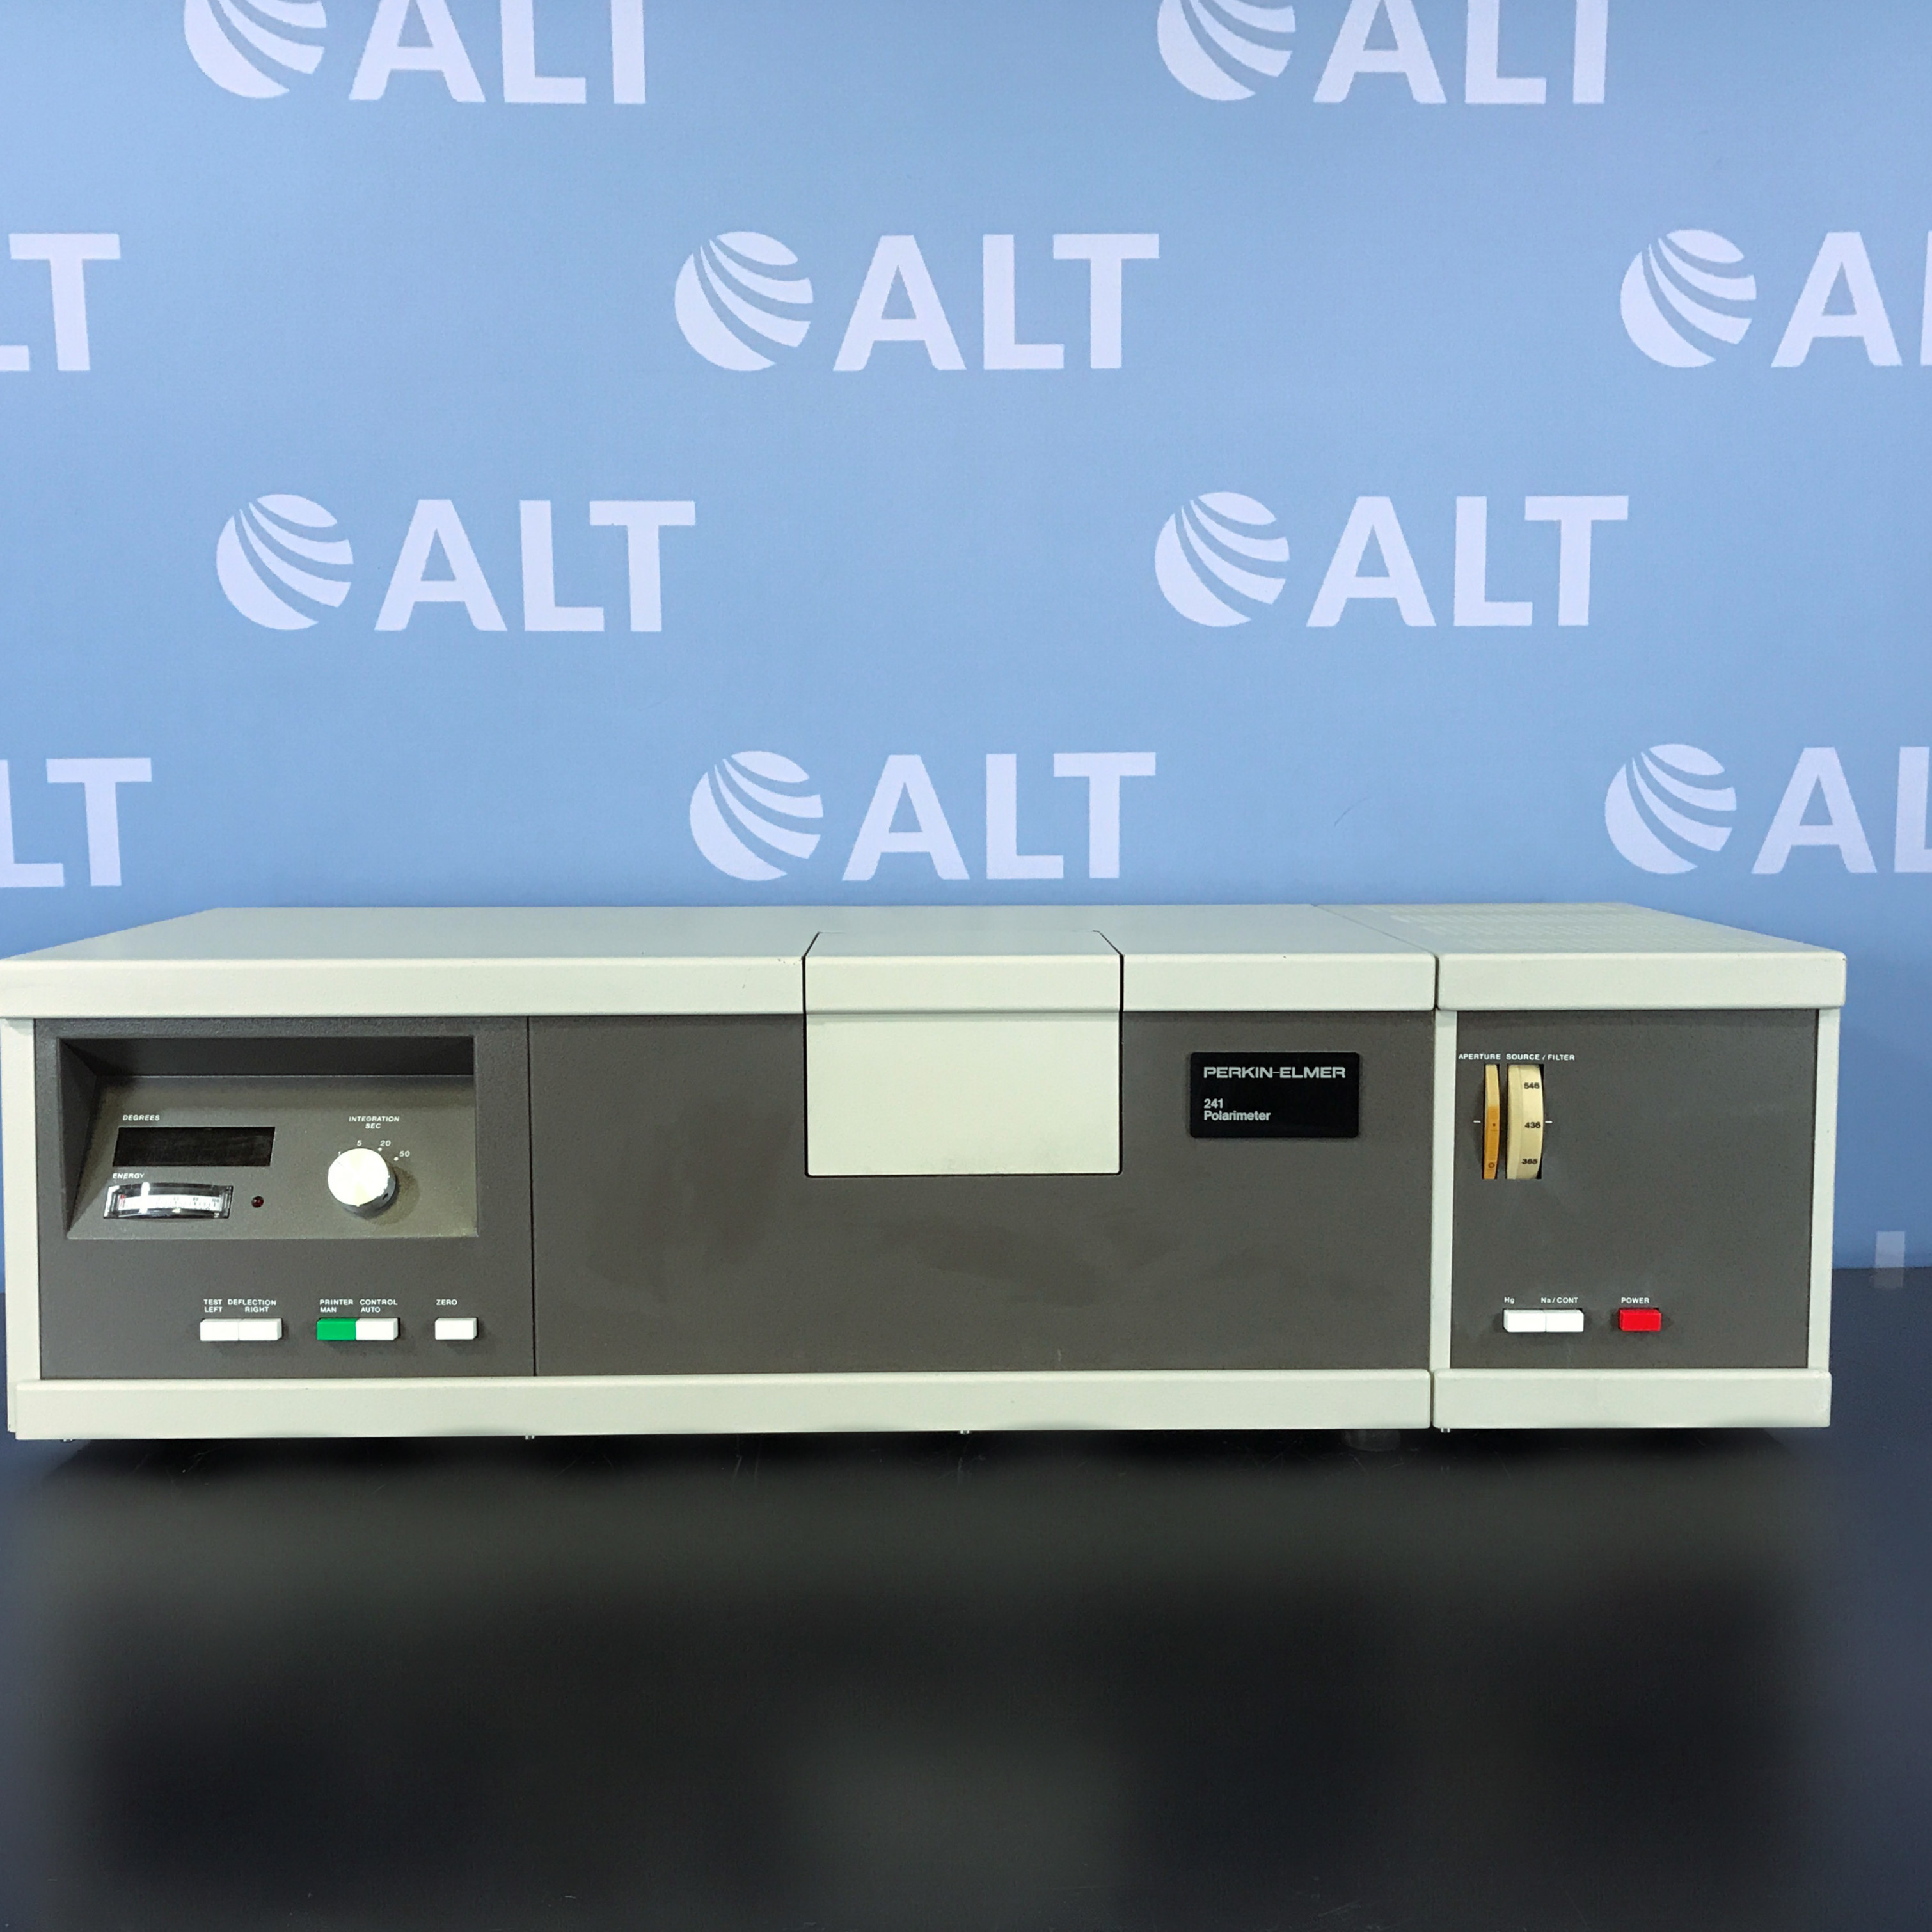 241 Polarimeter Name